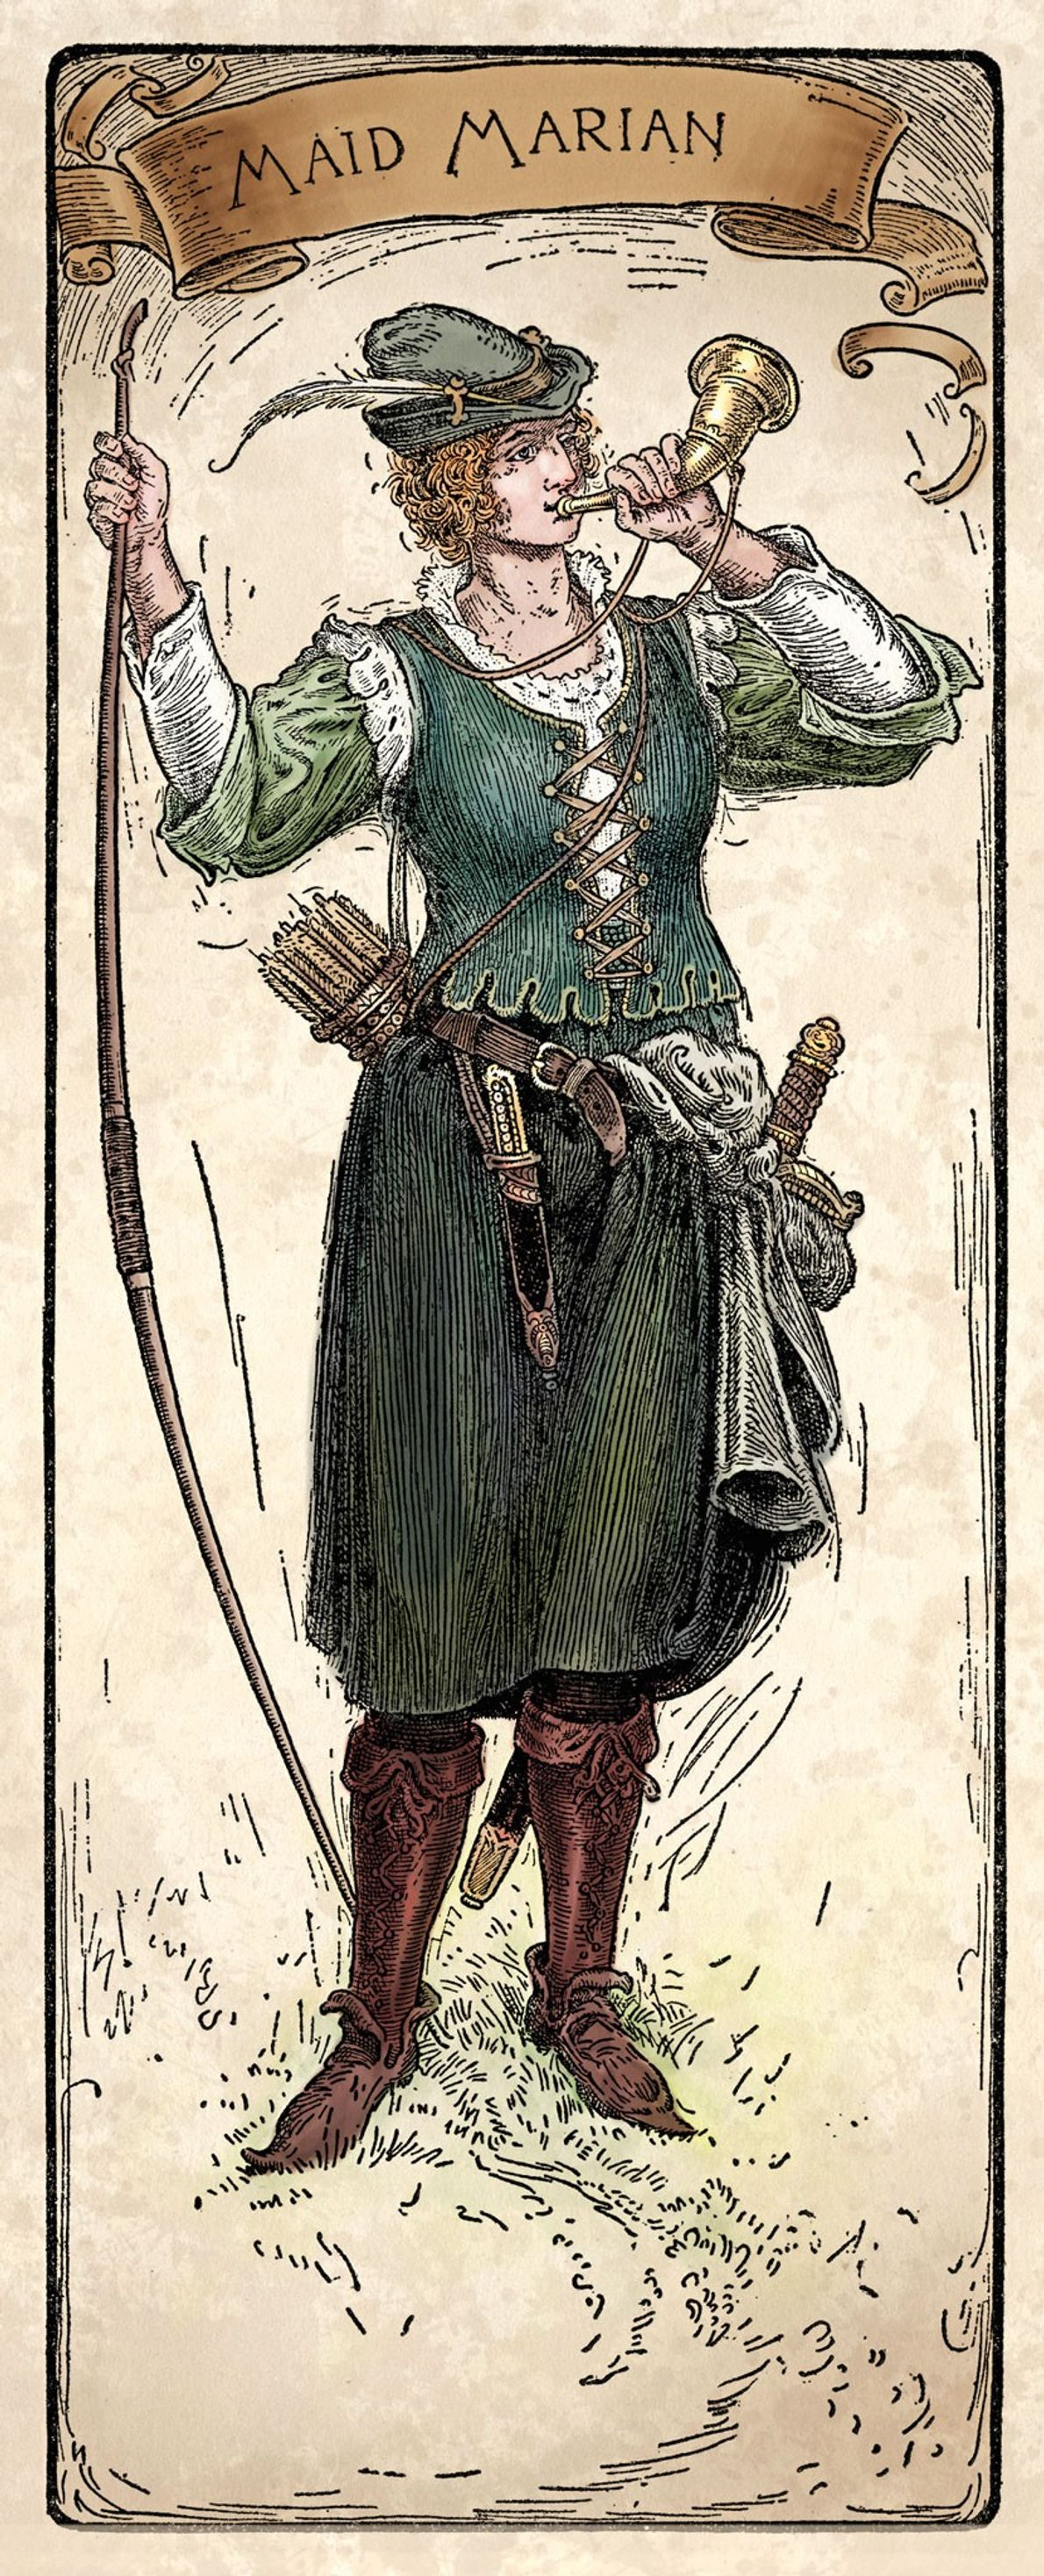 Starting in the 16th century, Marian appears in Robin Hood ballads, although she already existed as a ...